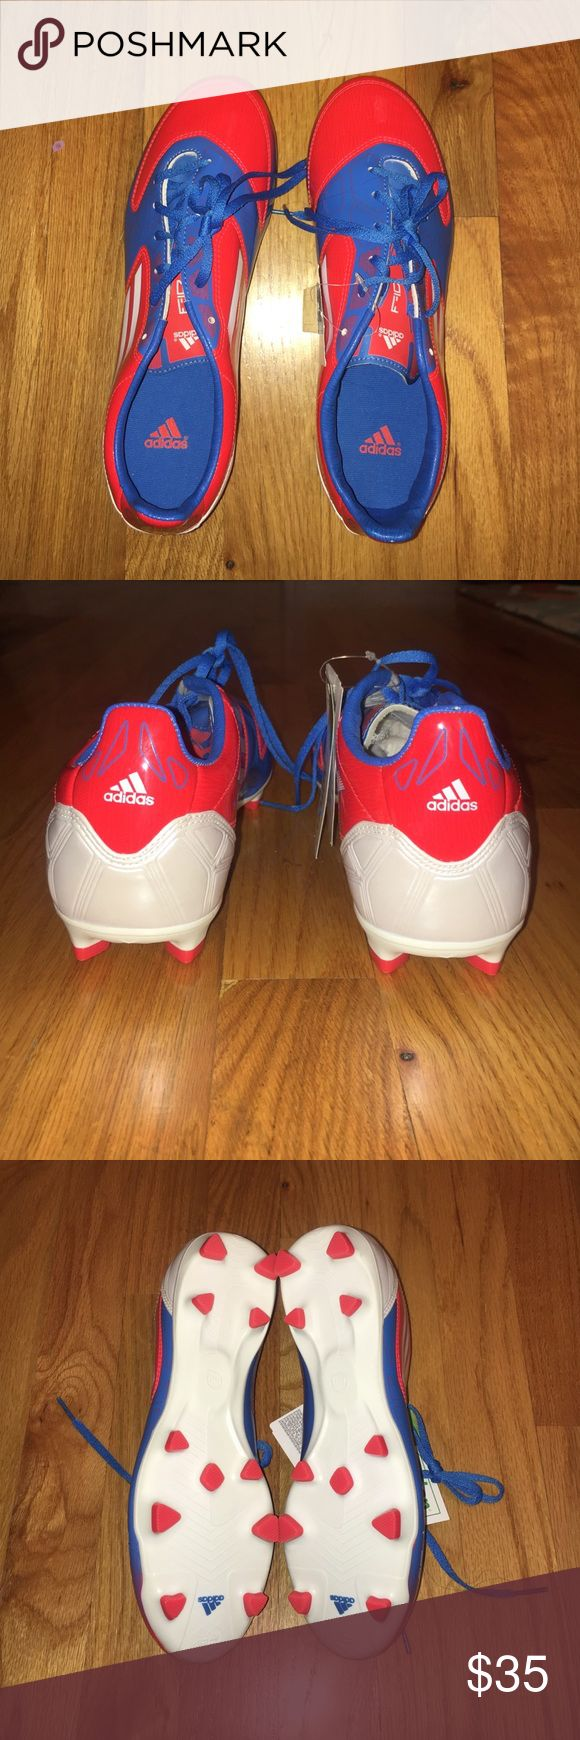 Adidas F10 Cleats with Agion Scent Protection Red, White, and Blue. Brand new with tags. Agion Powerful Scent Protection. Size 6 1/2 Mens (can be used for women, men, and children) Adidas Shoes